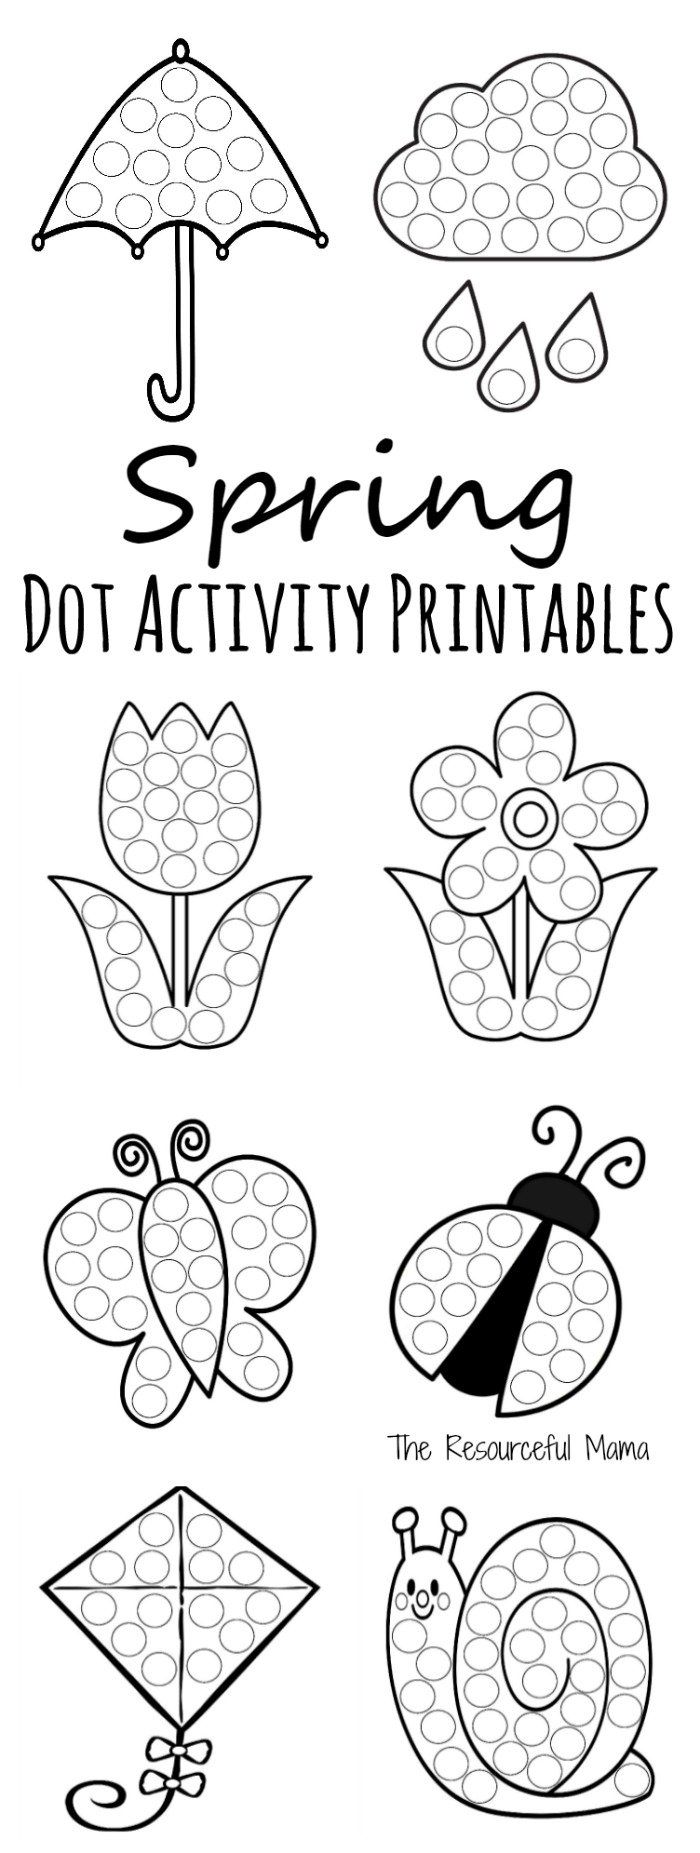 The coloring book herve tullet